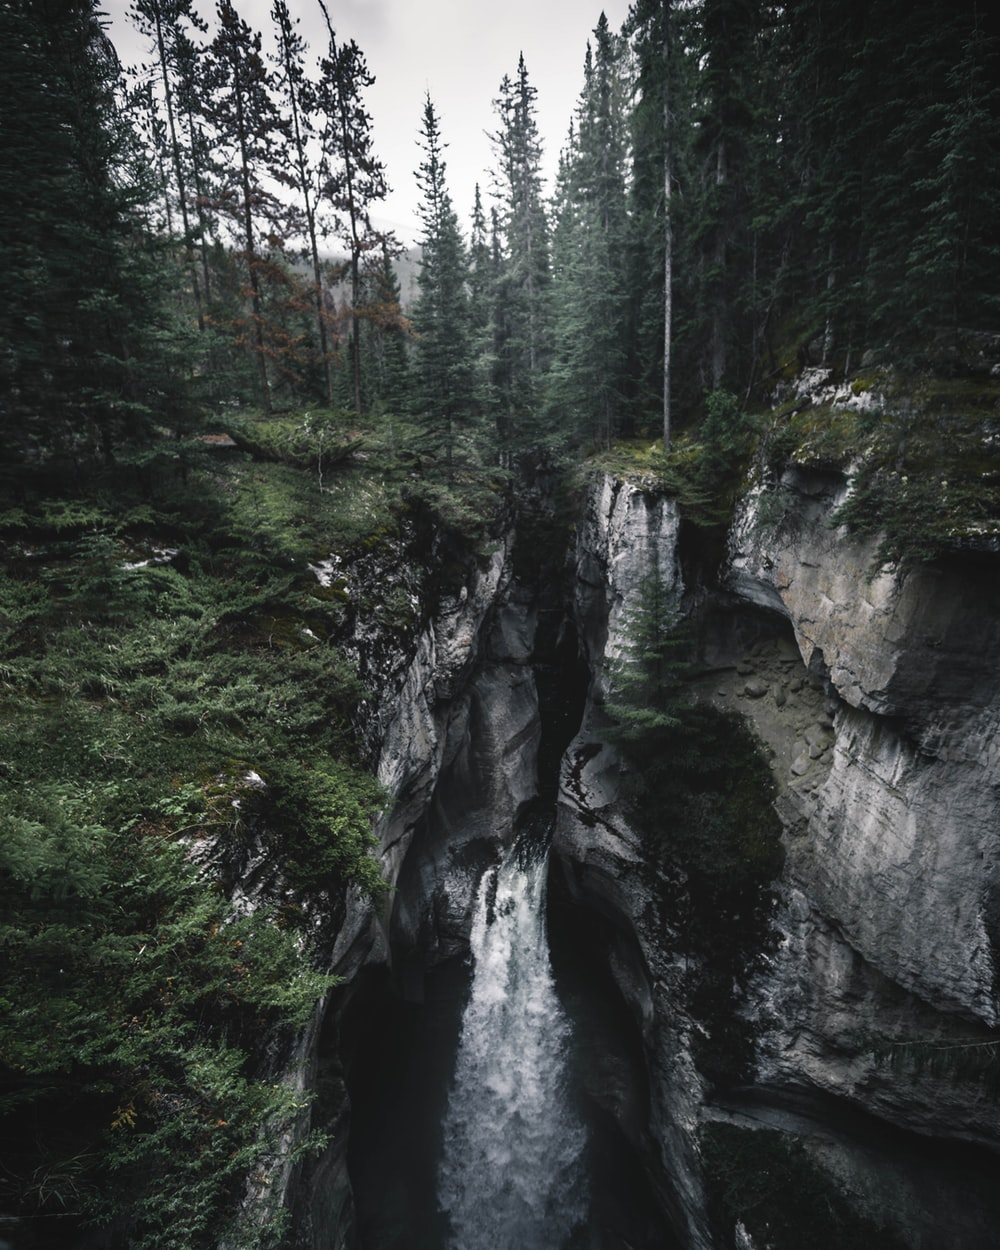 landscape photography of waterfalls near green trees